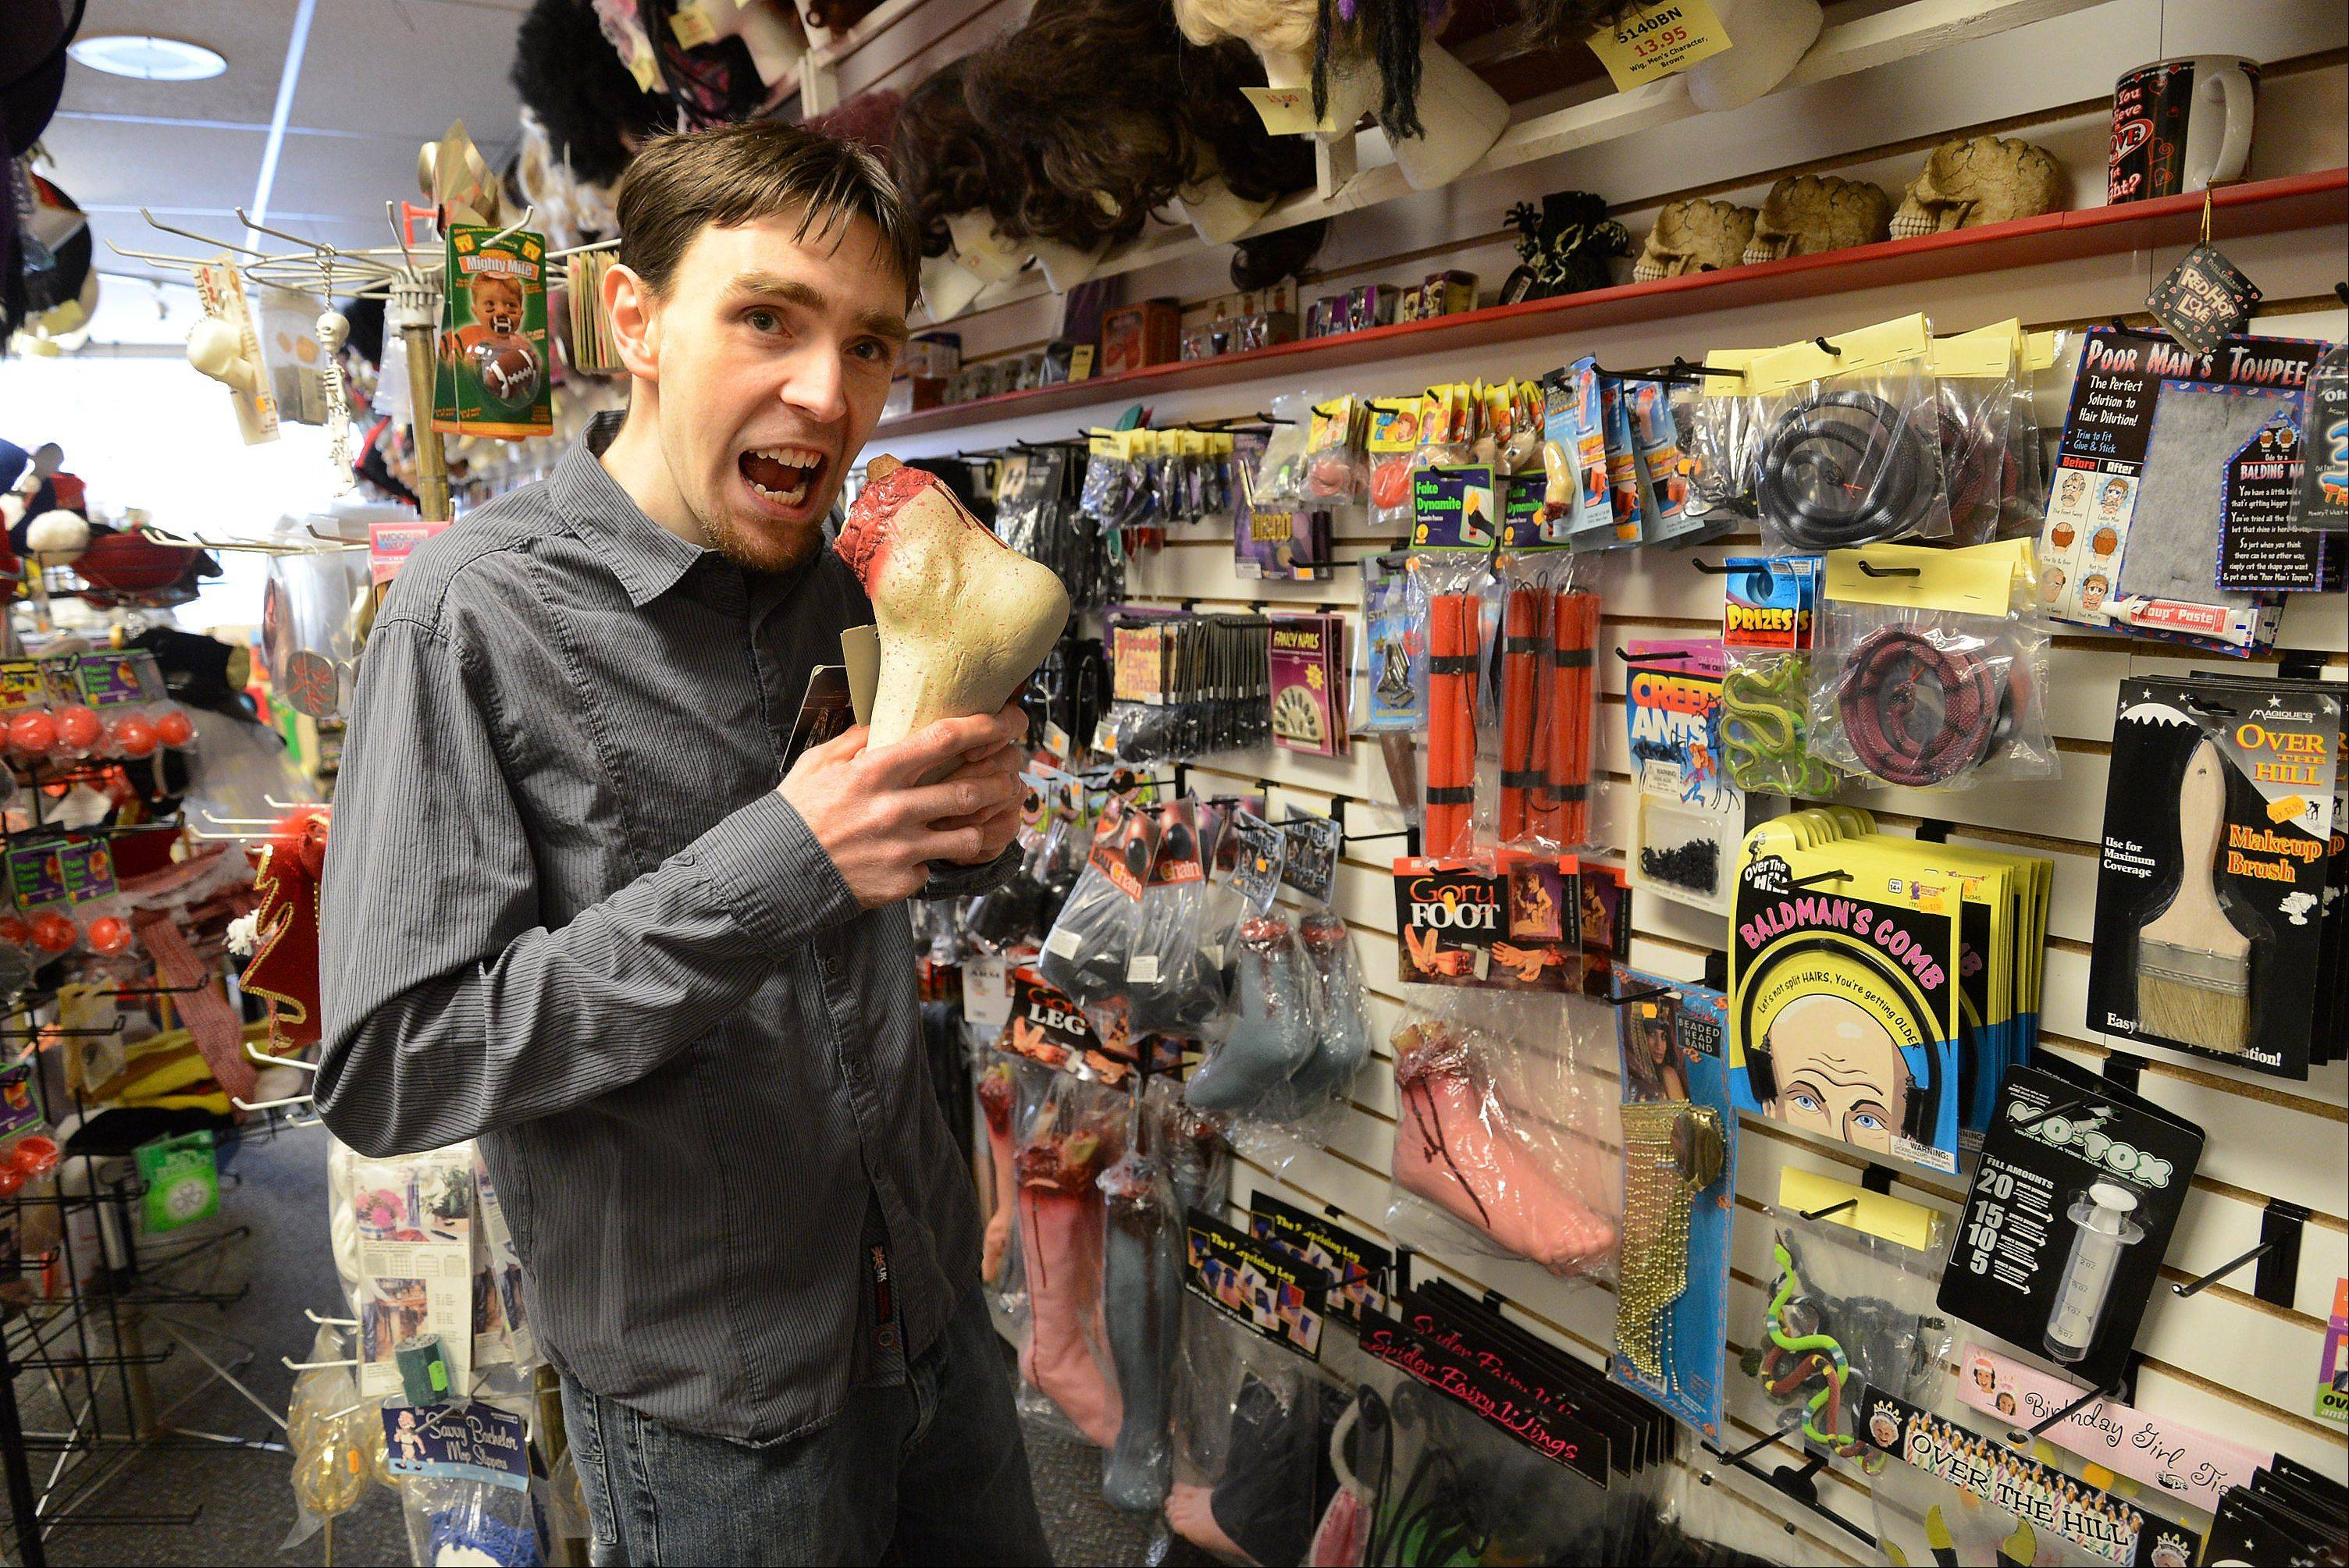 Not above making a joke about having an appetite for gore or a fear of putting his foot in his mouth, manager Brian Johnson chews on a fake foot at PJ's Trick Shop in Arlington Heights.